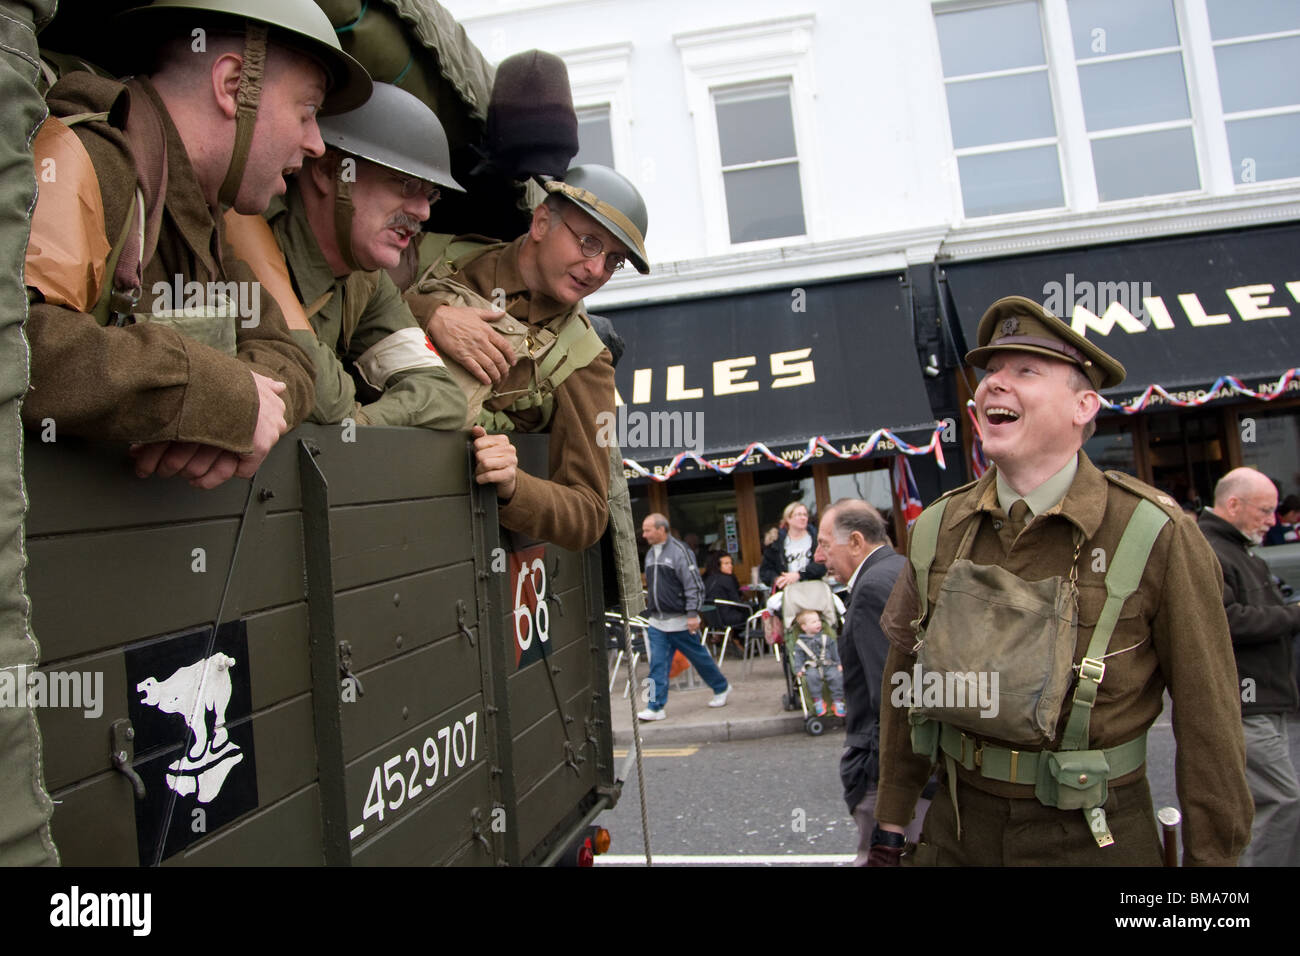 70th Anniversary of the rescue of British Expeditionary Force army from Dunkirk to Ramsgate May June 1940, celebrations - Stock Image